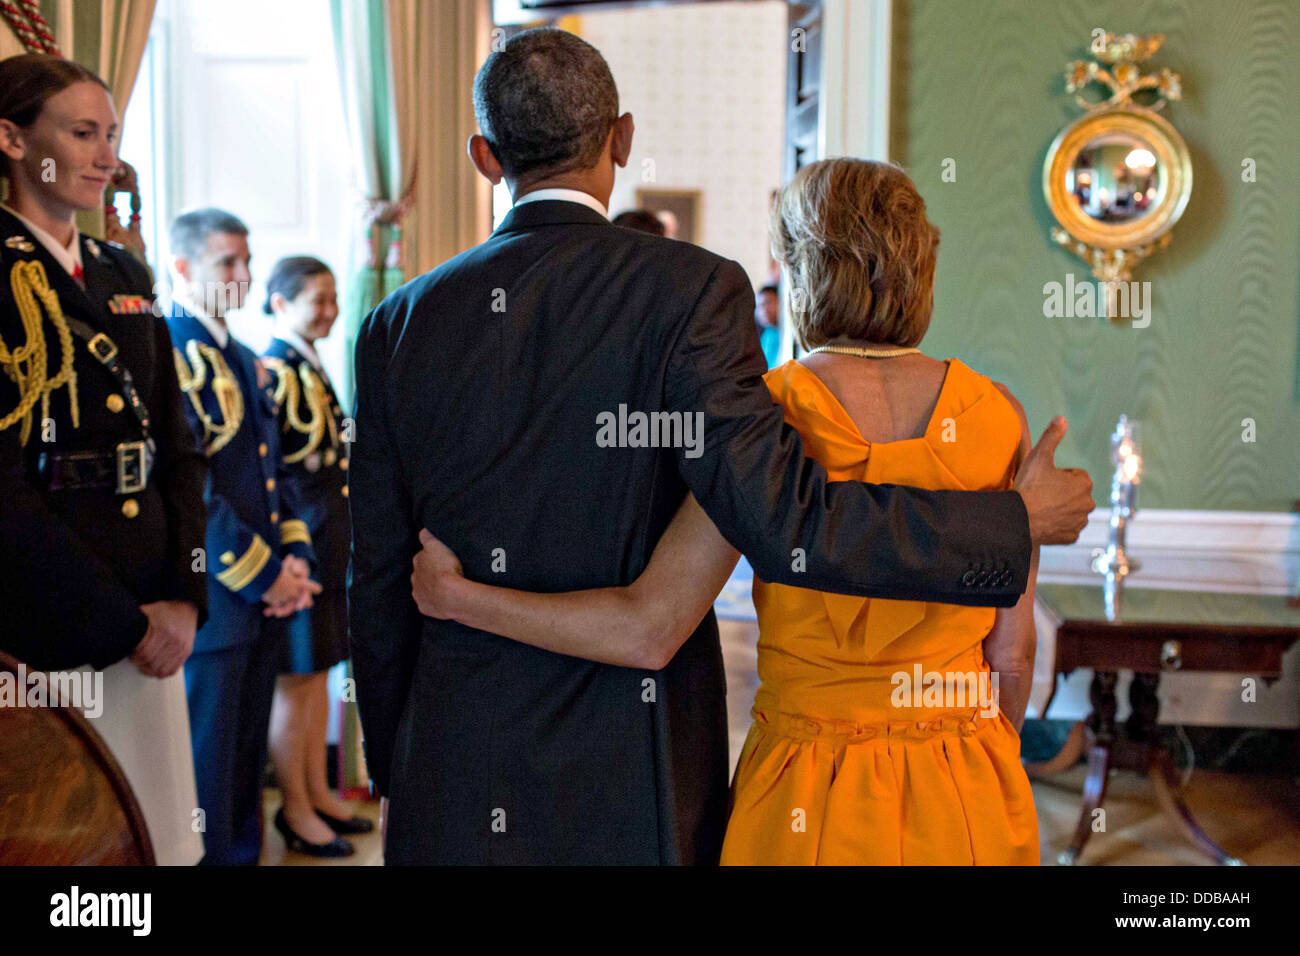 US President Barack Obama walks with Amb. Capricia Marshall, outgoing Chief of Protocol at the Department of State, - Stock Image